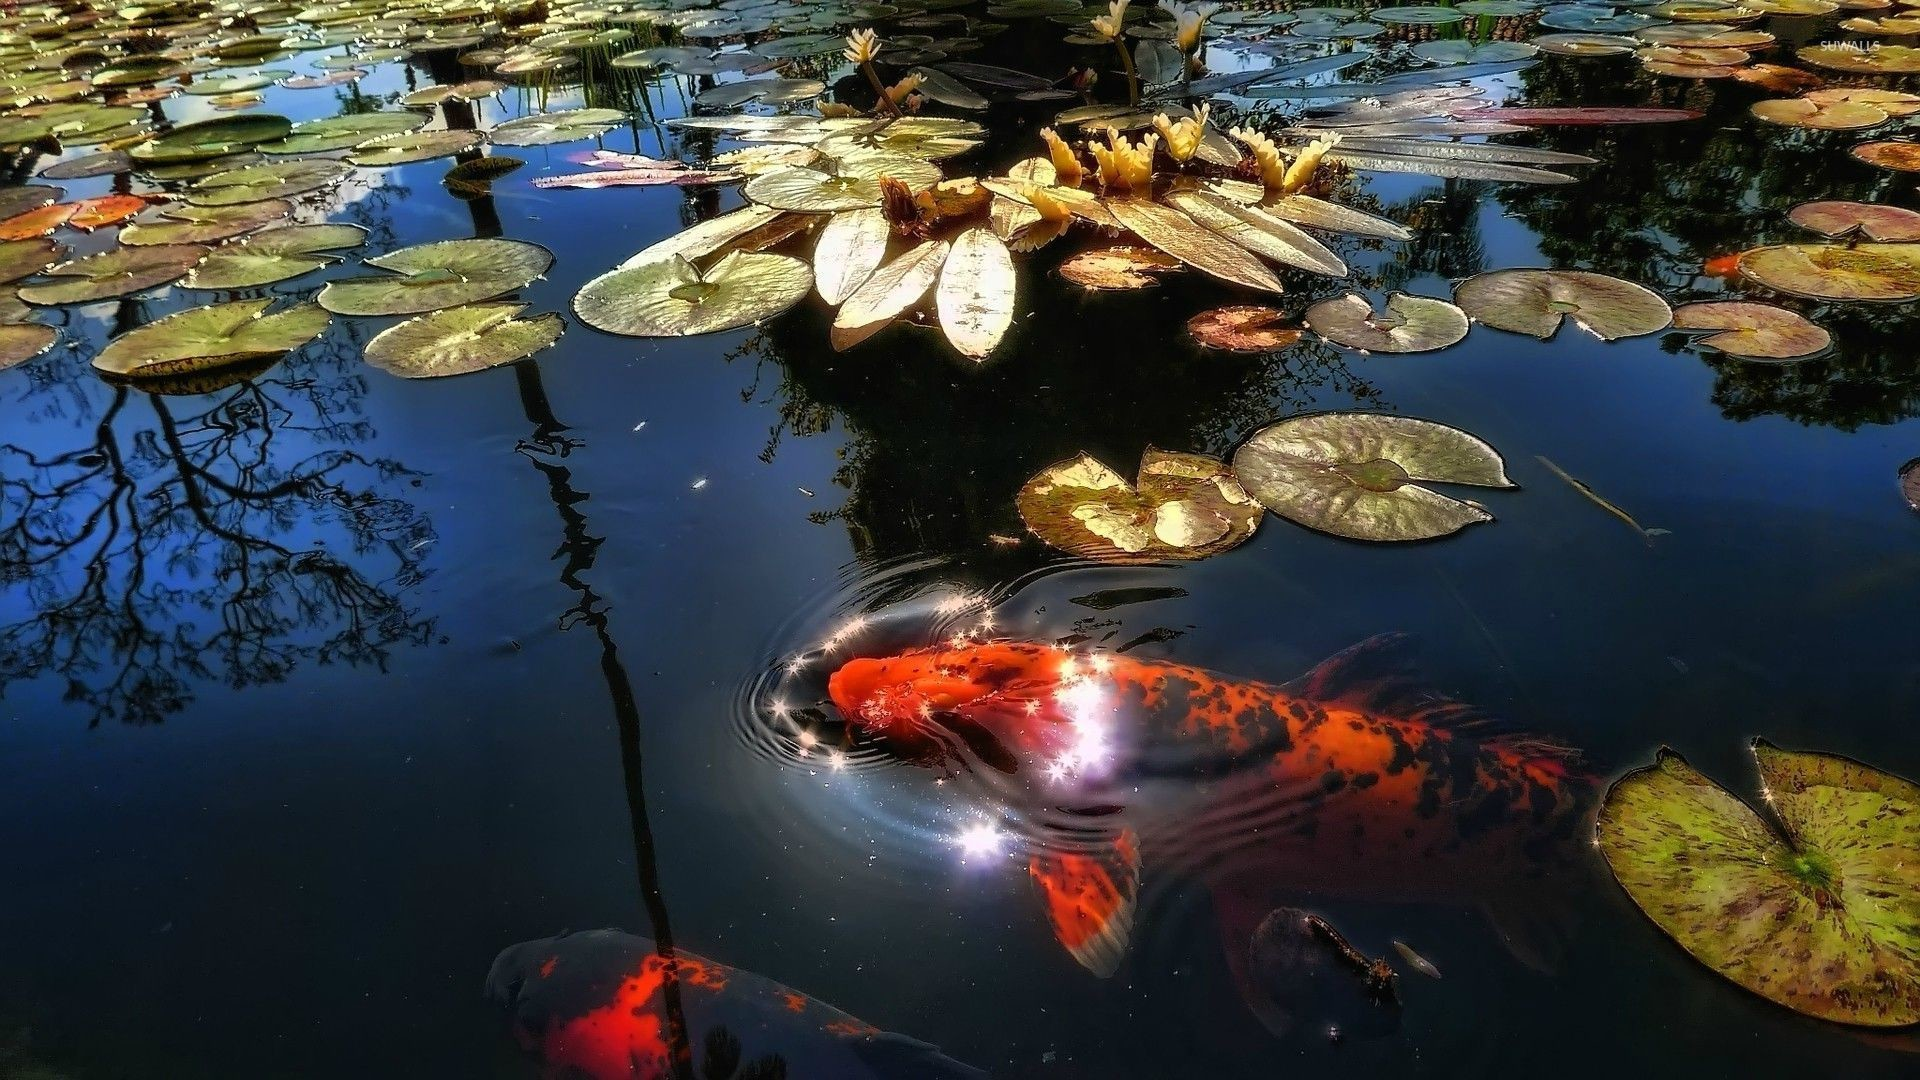 1920x1080 Koi fish in the pond wallpaper - Animal wallpapers - #27625 Koi Fish Pond  Wallpaper